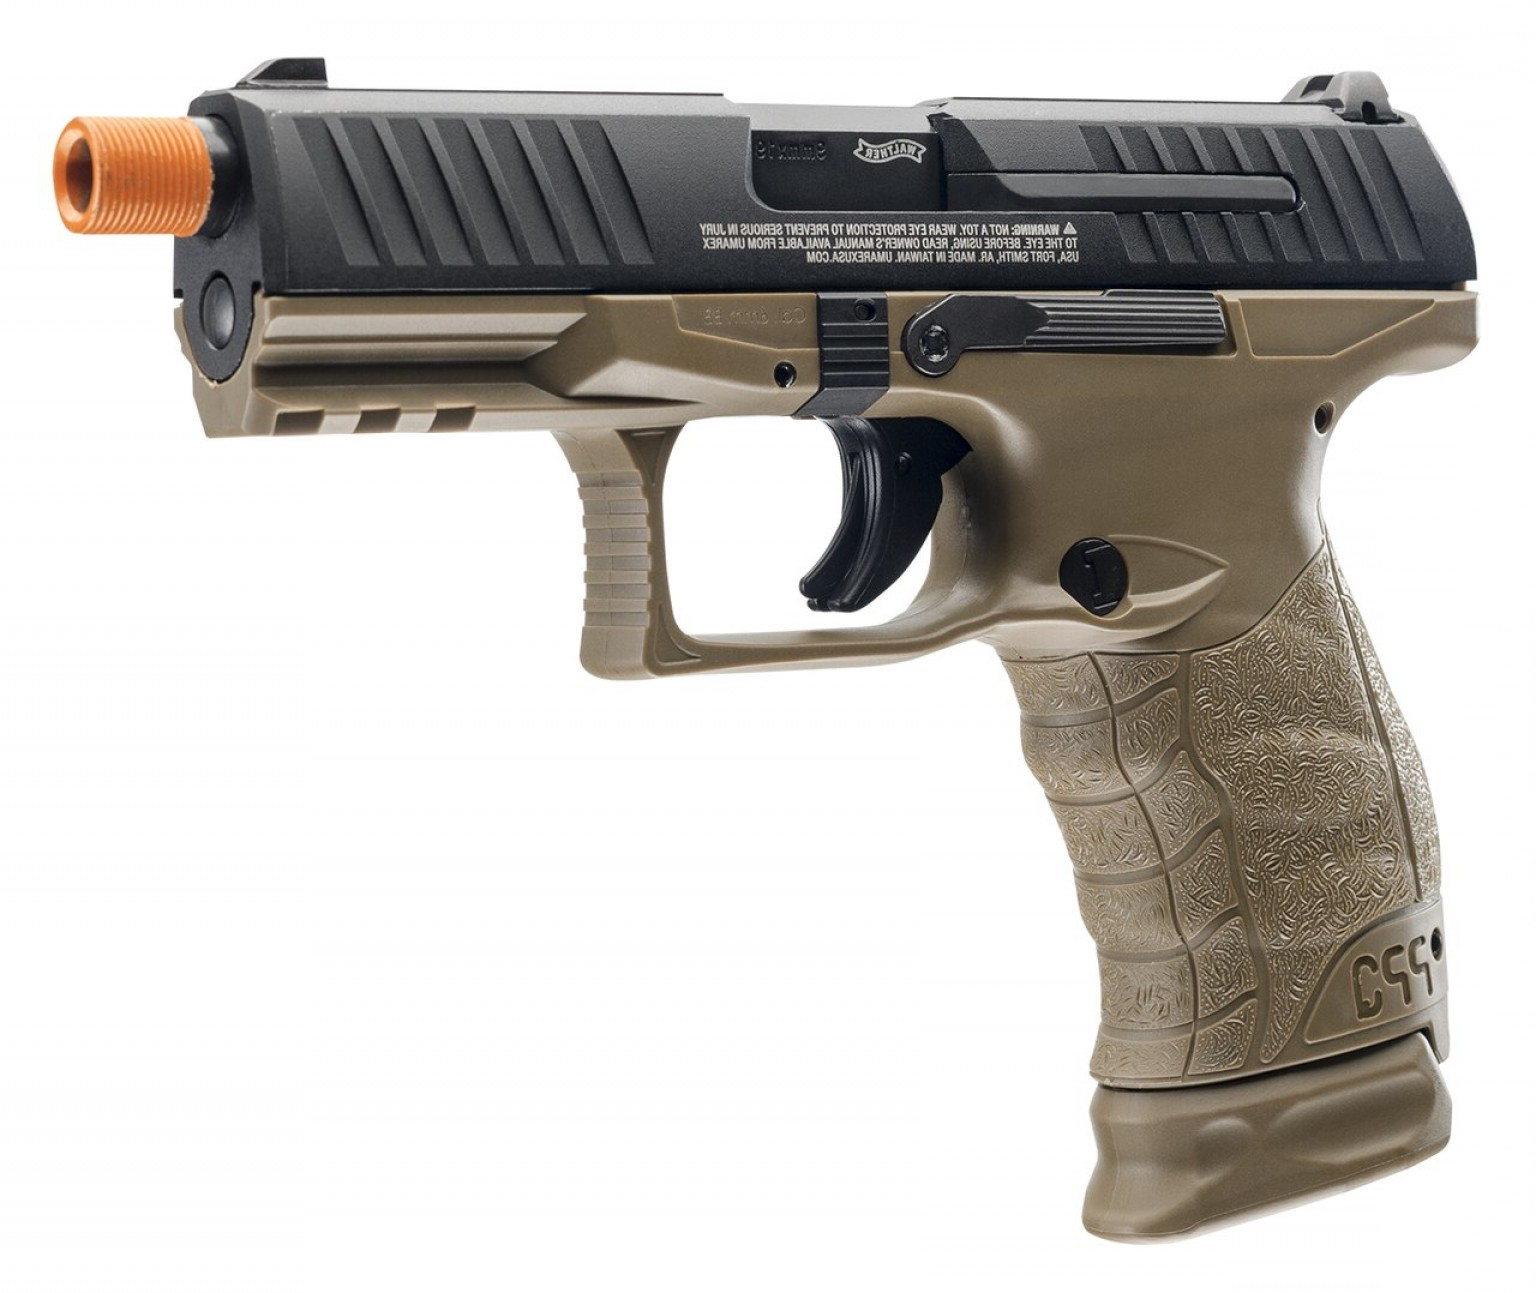 Vector Arms Uzi Manual: Elite Force Ppq Tactical Gas Blowback Airsoft Pistol